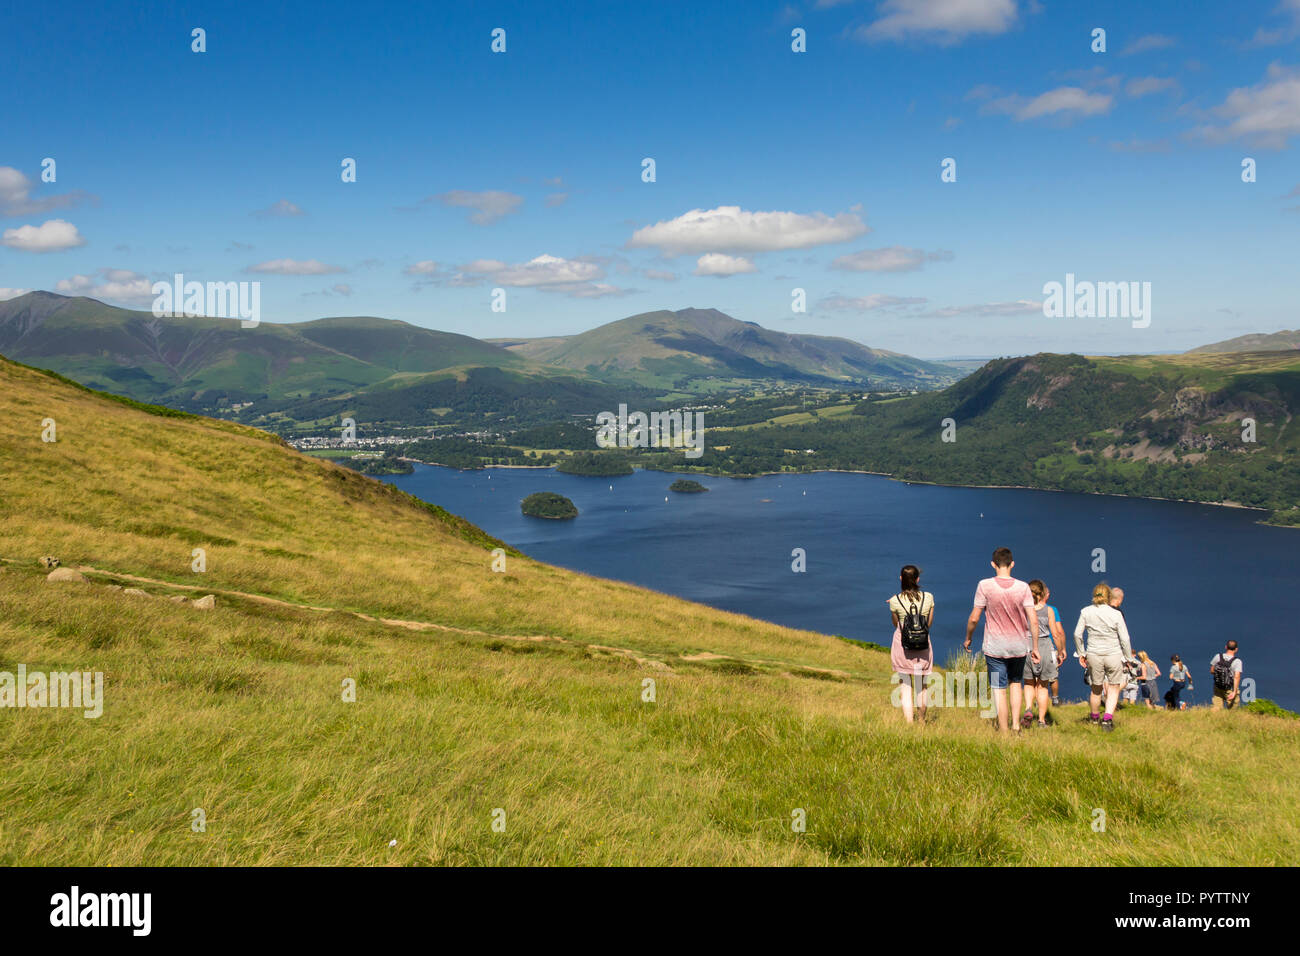 A group of young people walking near the summit of  Cat Bells (451 metres) Keswick, Cumbria, heading towards the shores of Derwent Water. Stock Photo